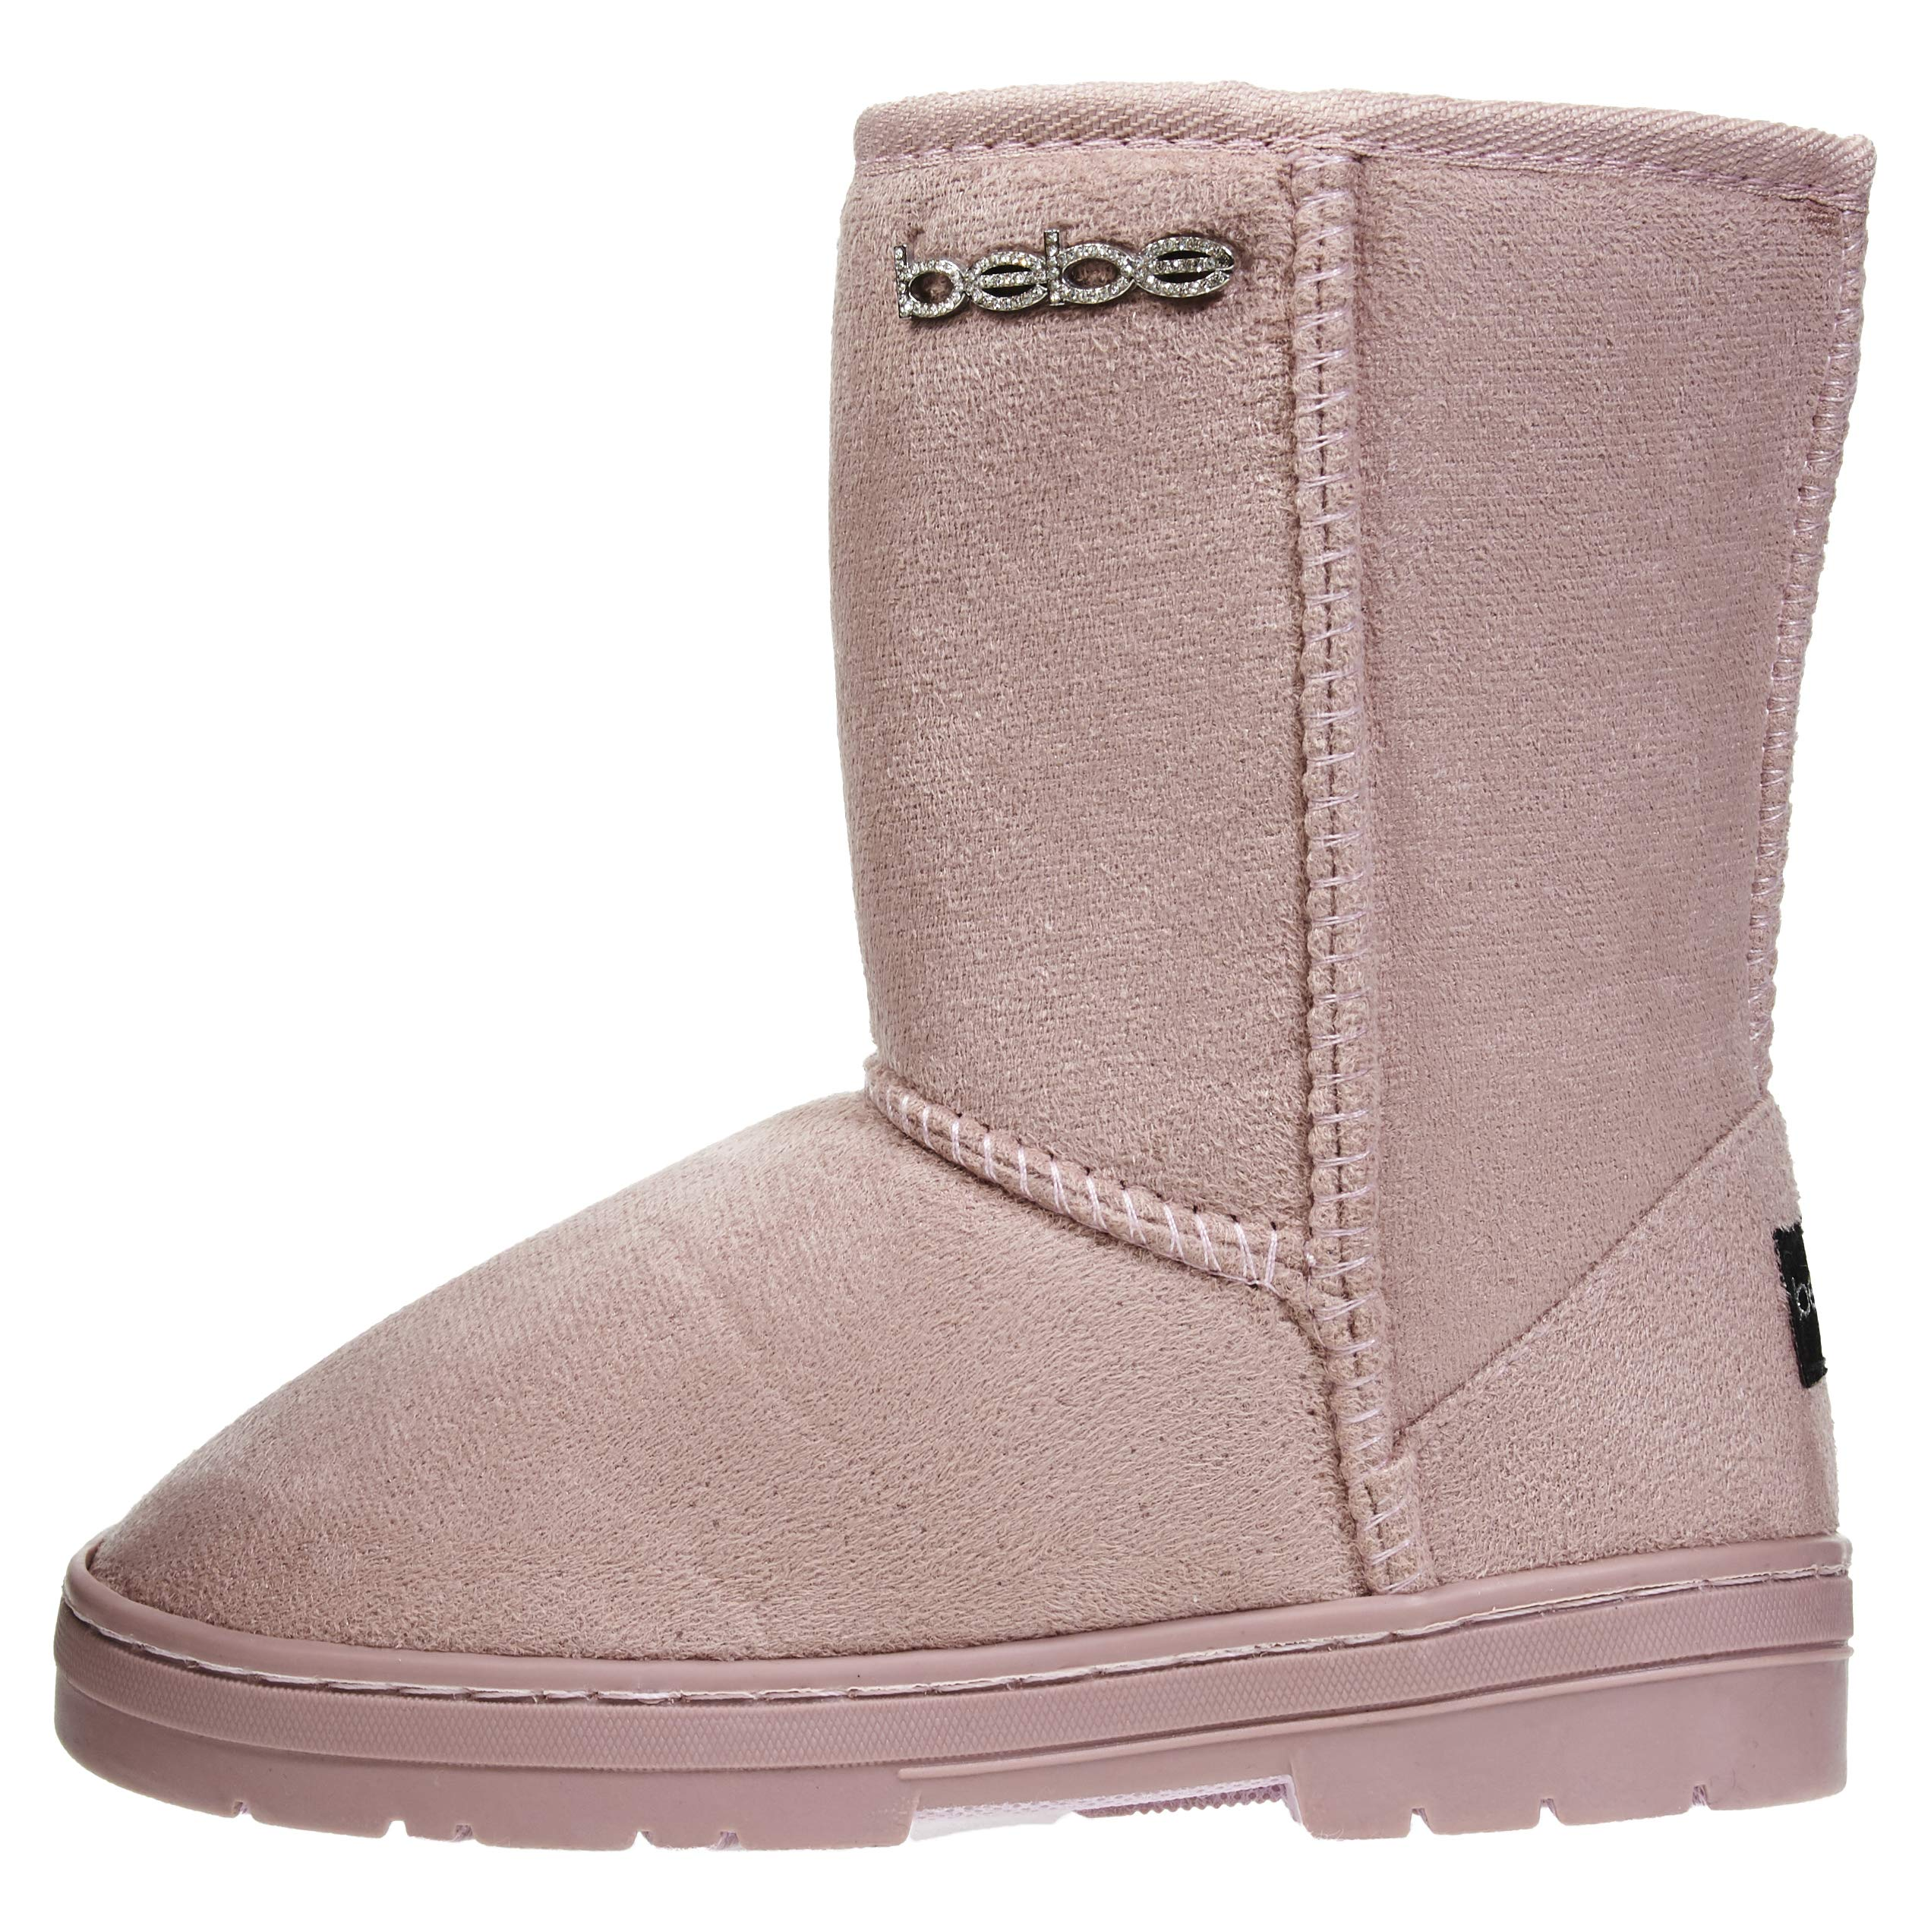 bebe Girls Winter Boots Size 11 Casual Dress Warm Slip-On Mid-Calf Shoes Blush